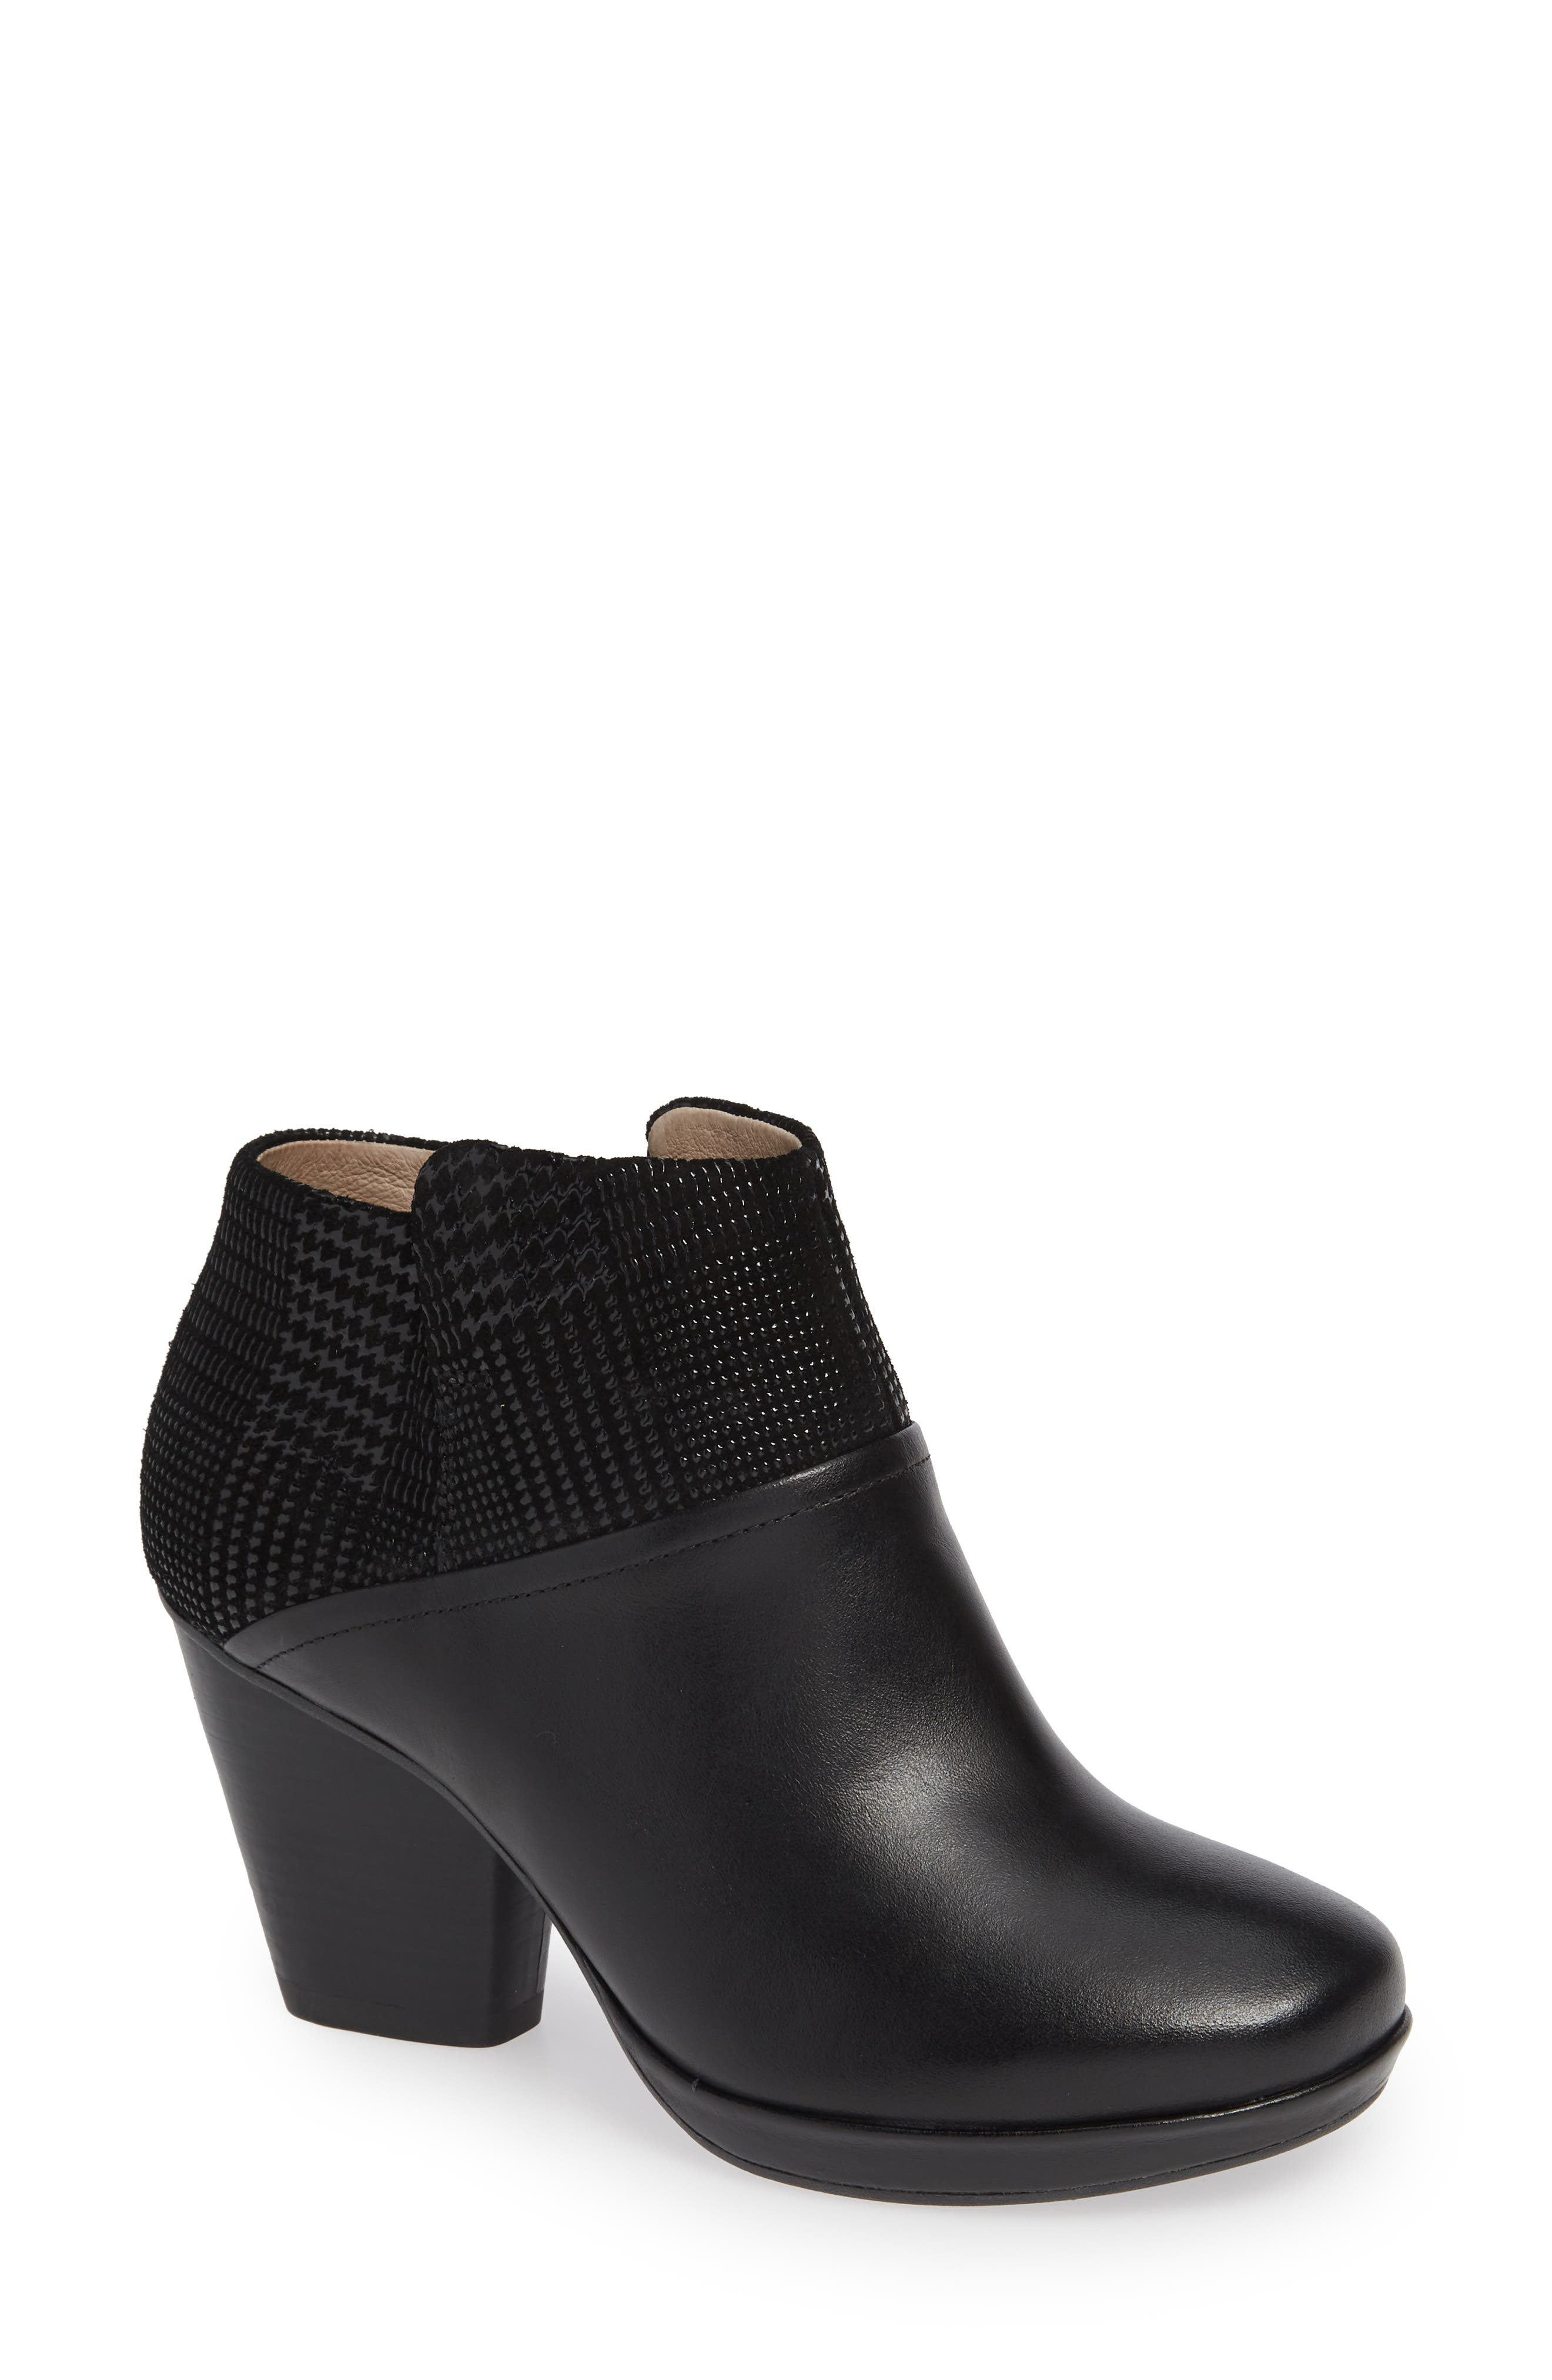 Miley Burnished Leather Bootie,                         Main,                         color, BLACK BURNISHED LEATHER